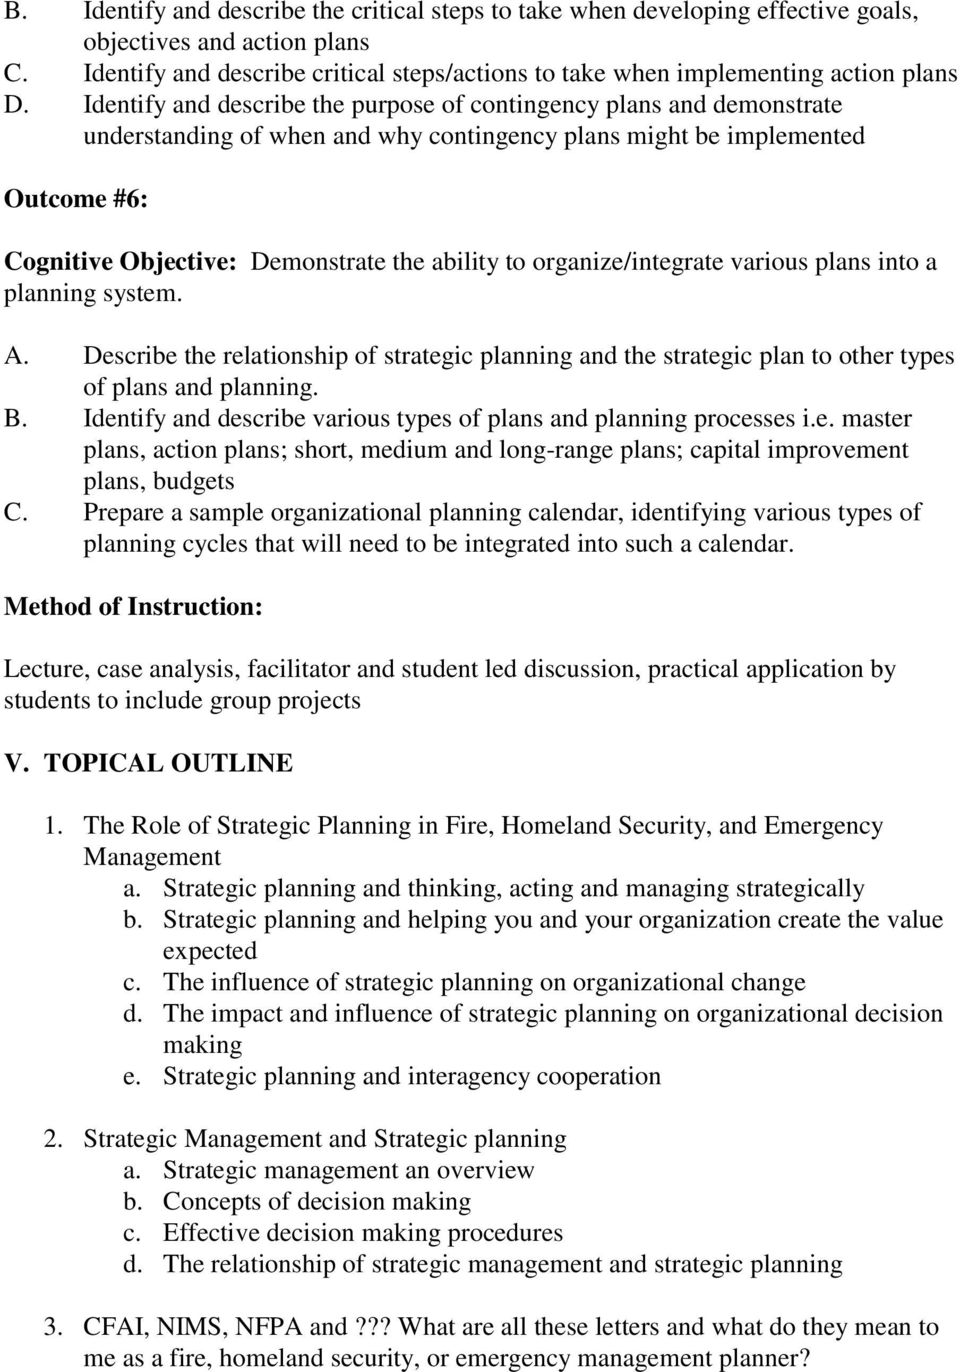 Identify and describe the purpose of contingency plans and demonstrate understanding of when and why contingency plans might be implemented Outcome #6: Cognitive Objective: Demonstrate the ability to